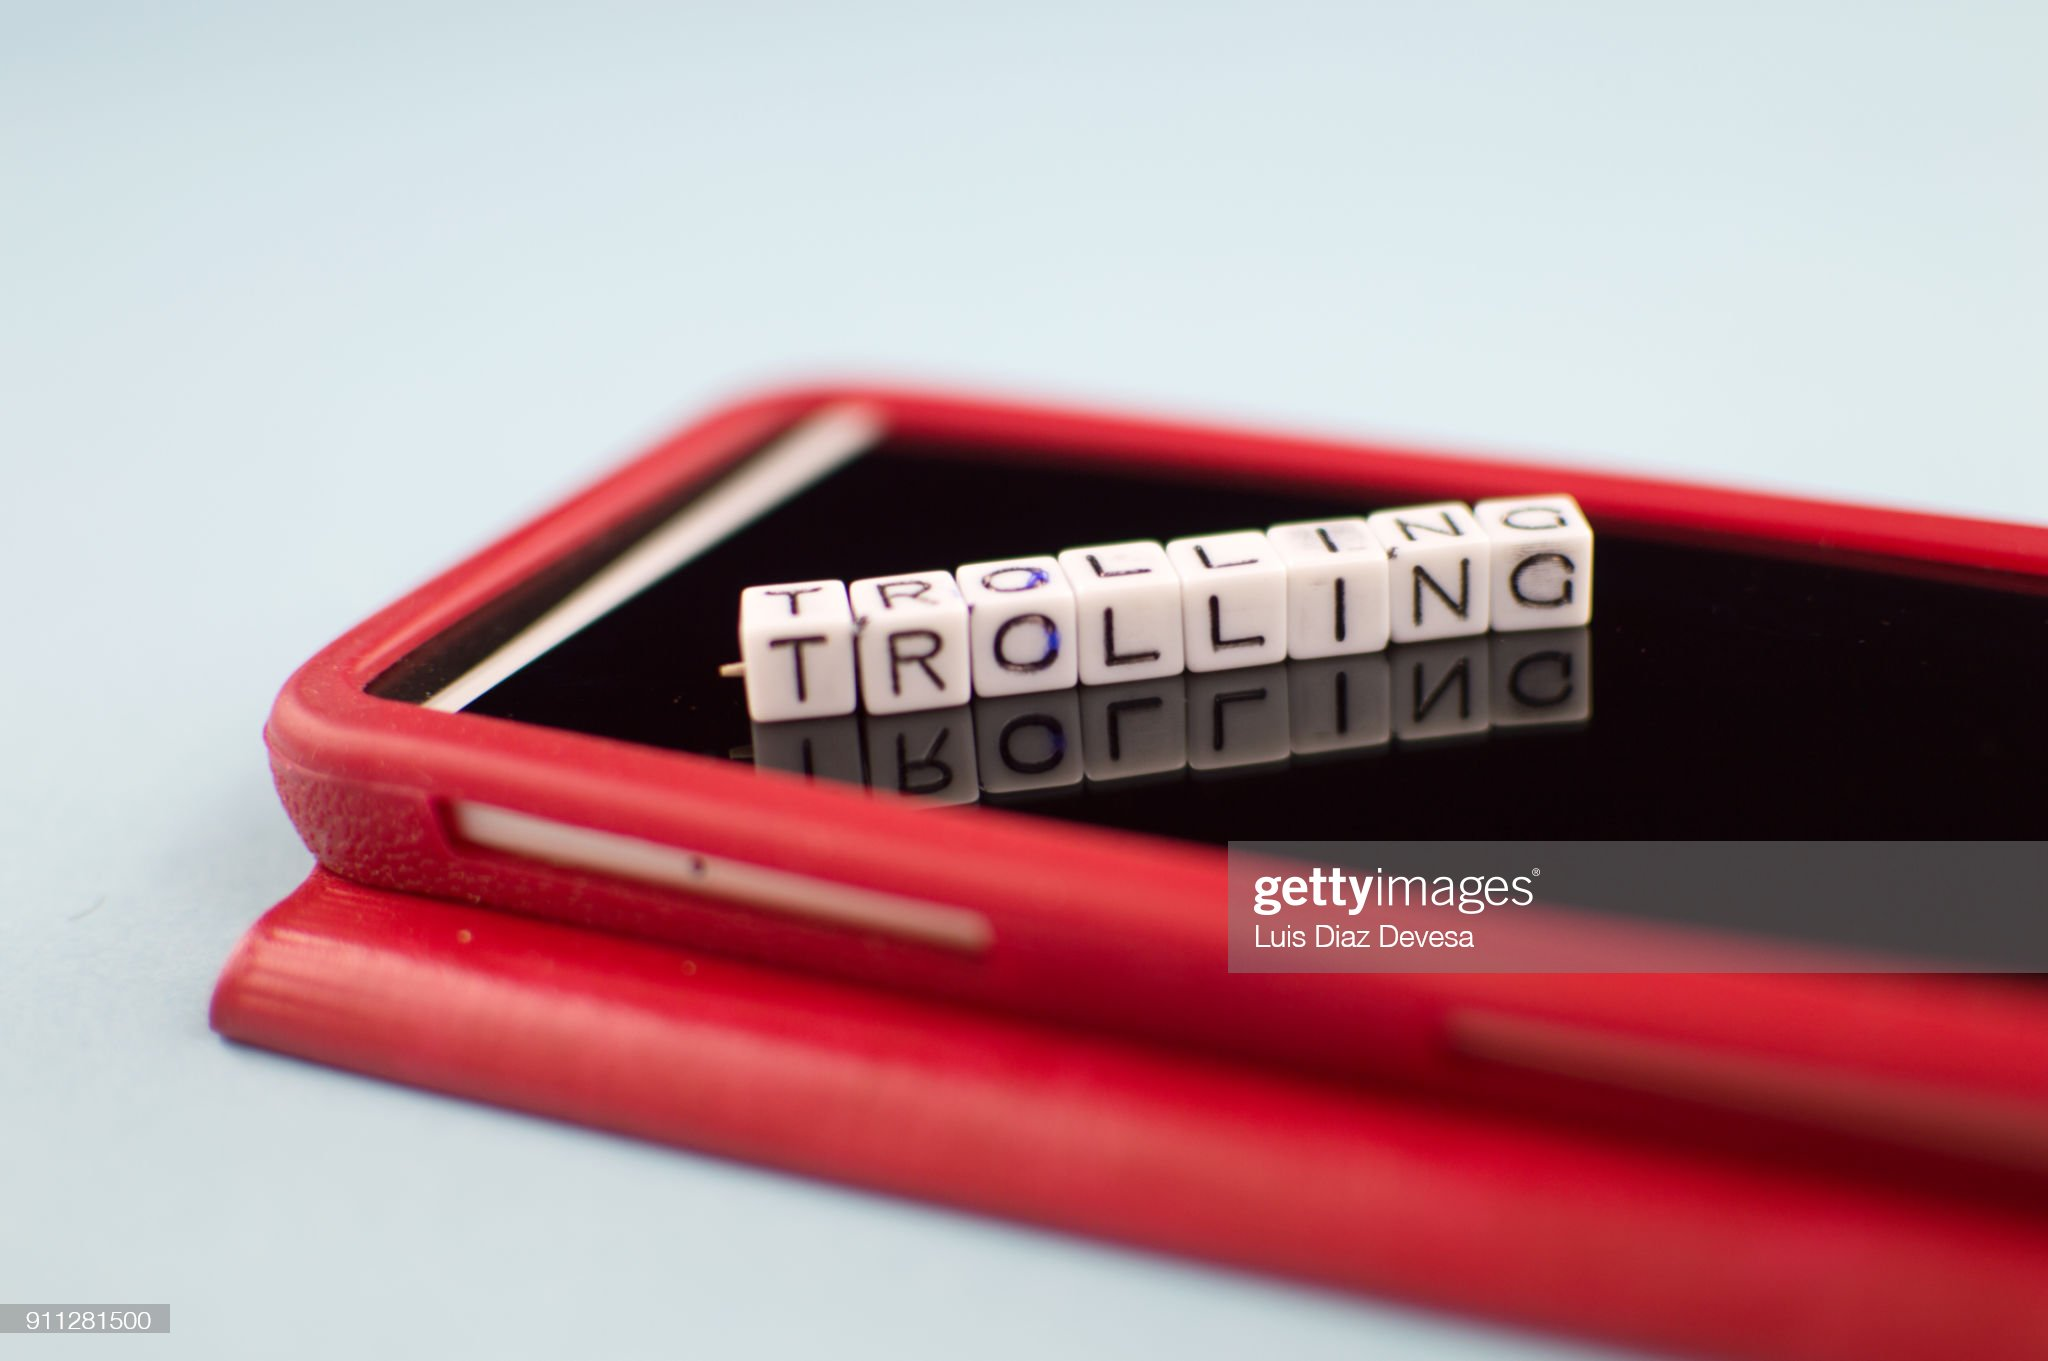 some-people-are-using-their-mobile-phone